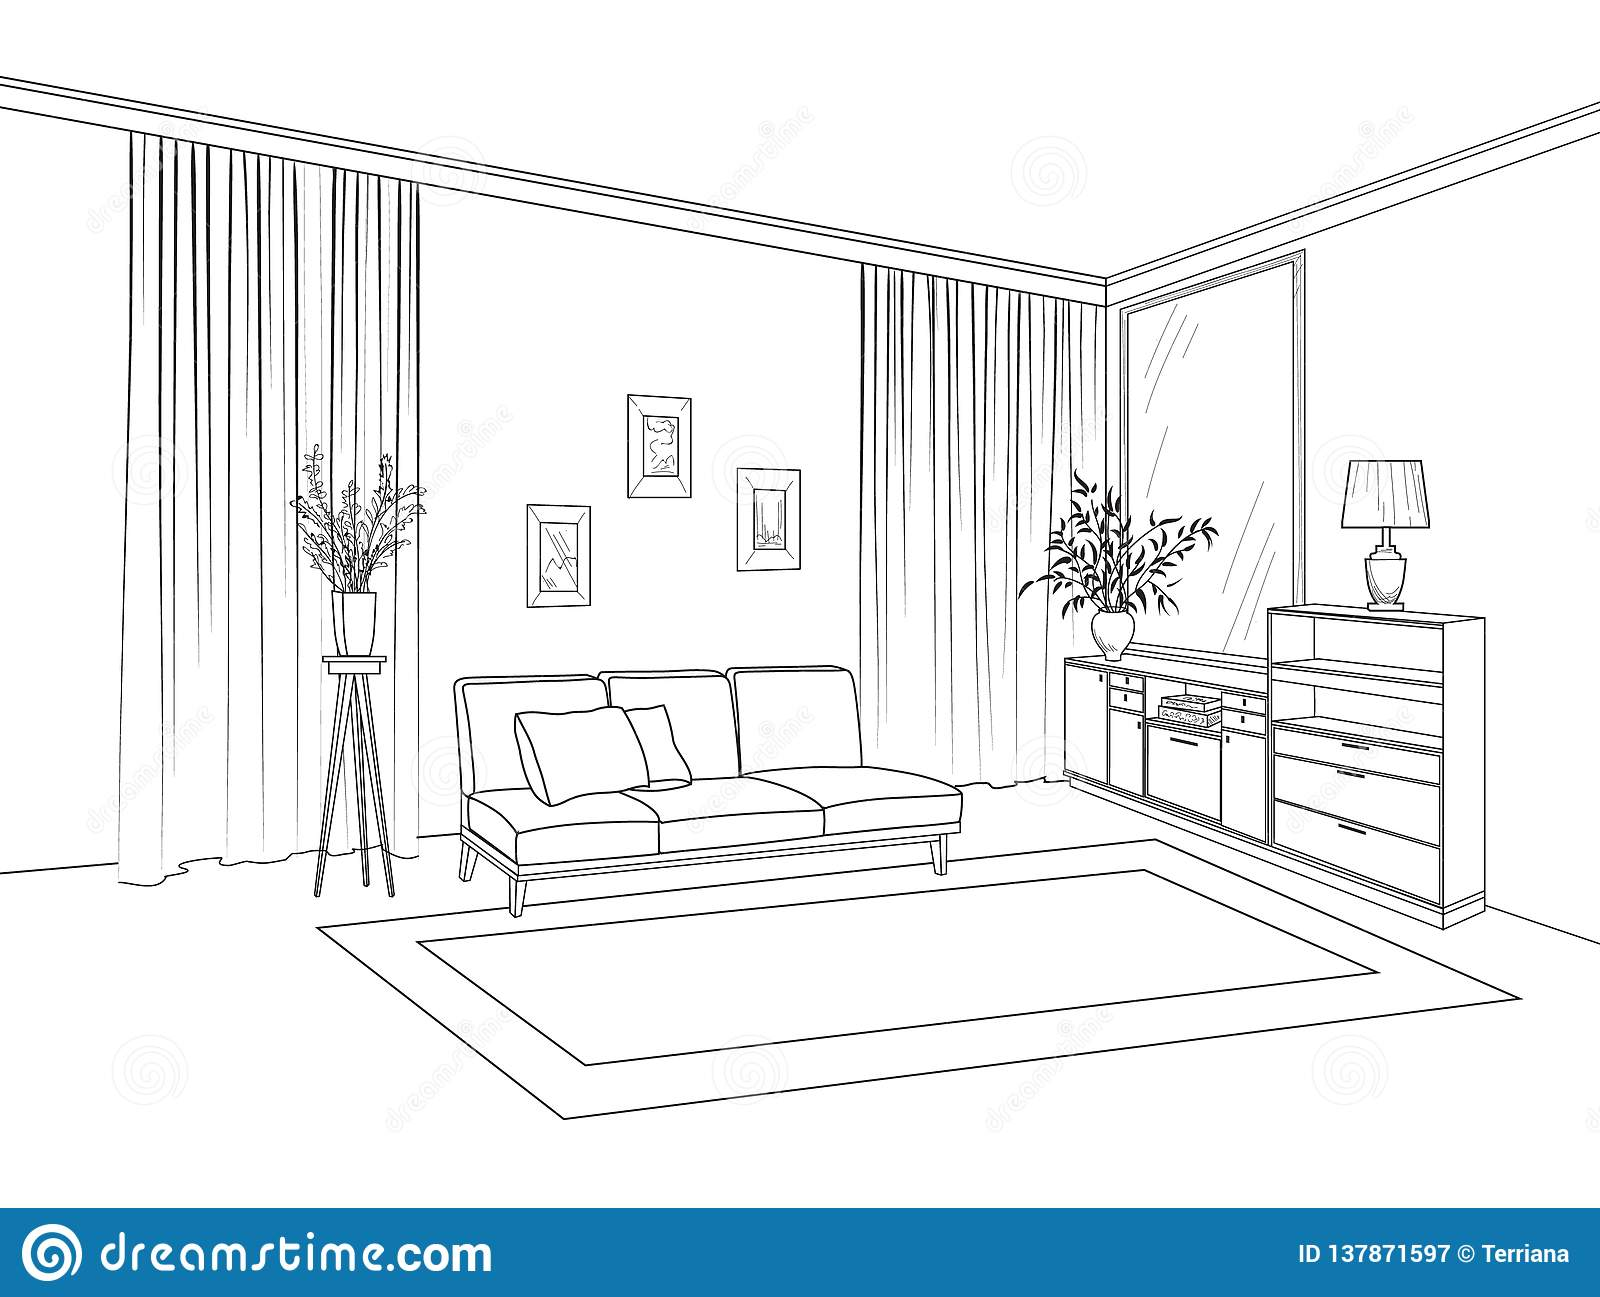 Home Living Room Interior Outline Sketch Of Furniture With Sofa